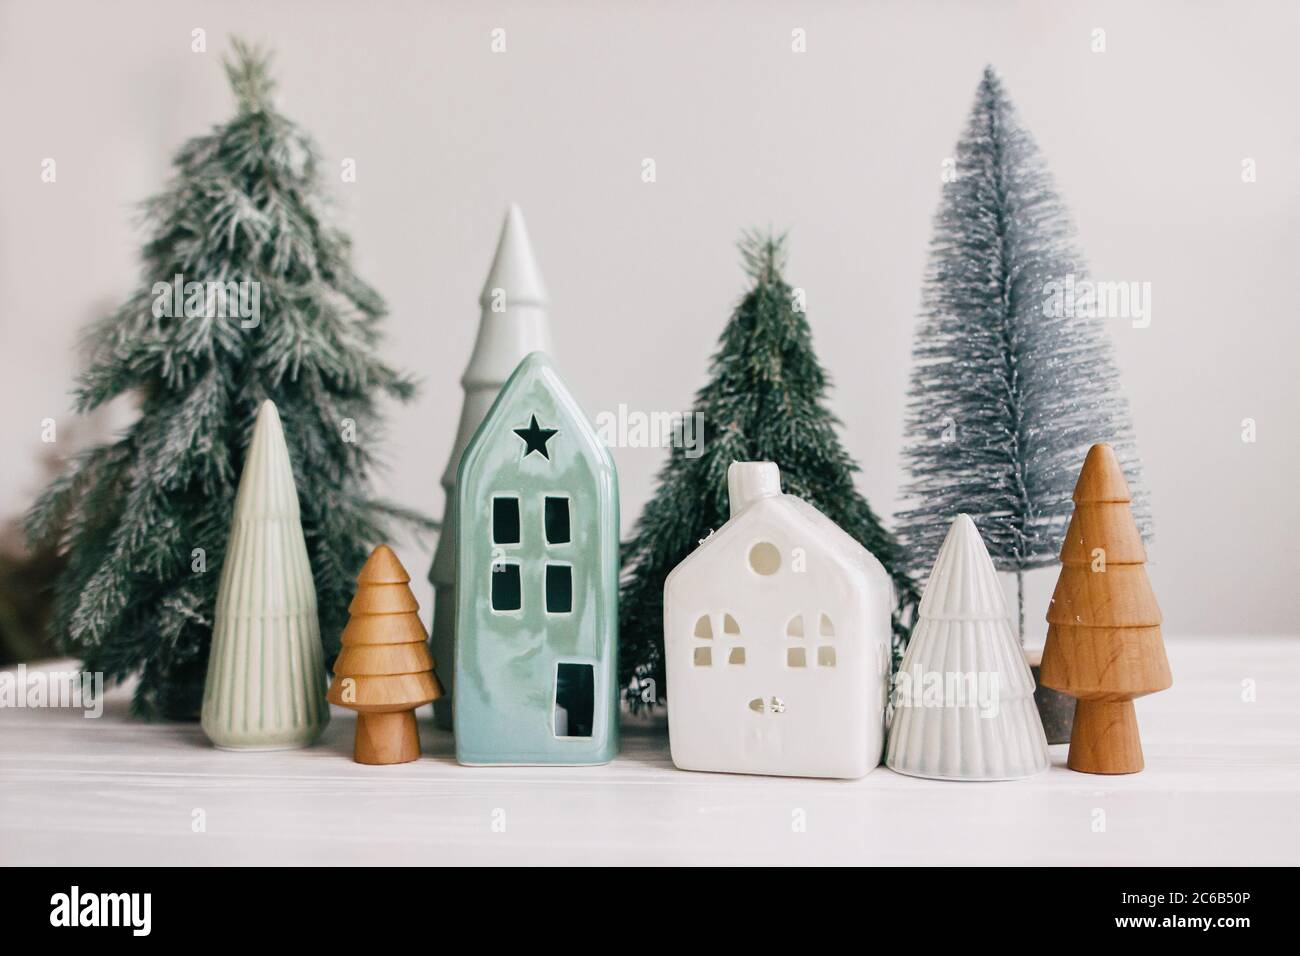 Happy Holidays Miniature Cozy Village Ceramic Houses Wooden And Handmade Christmas Trees Christmas Little Houses And Trees On White Background Fe Stock Photo Alamy